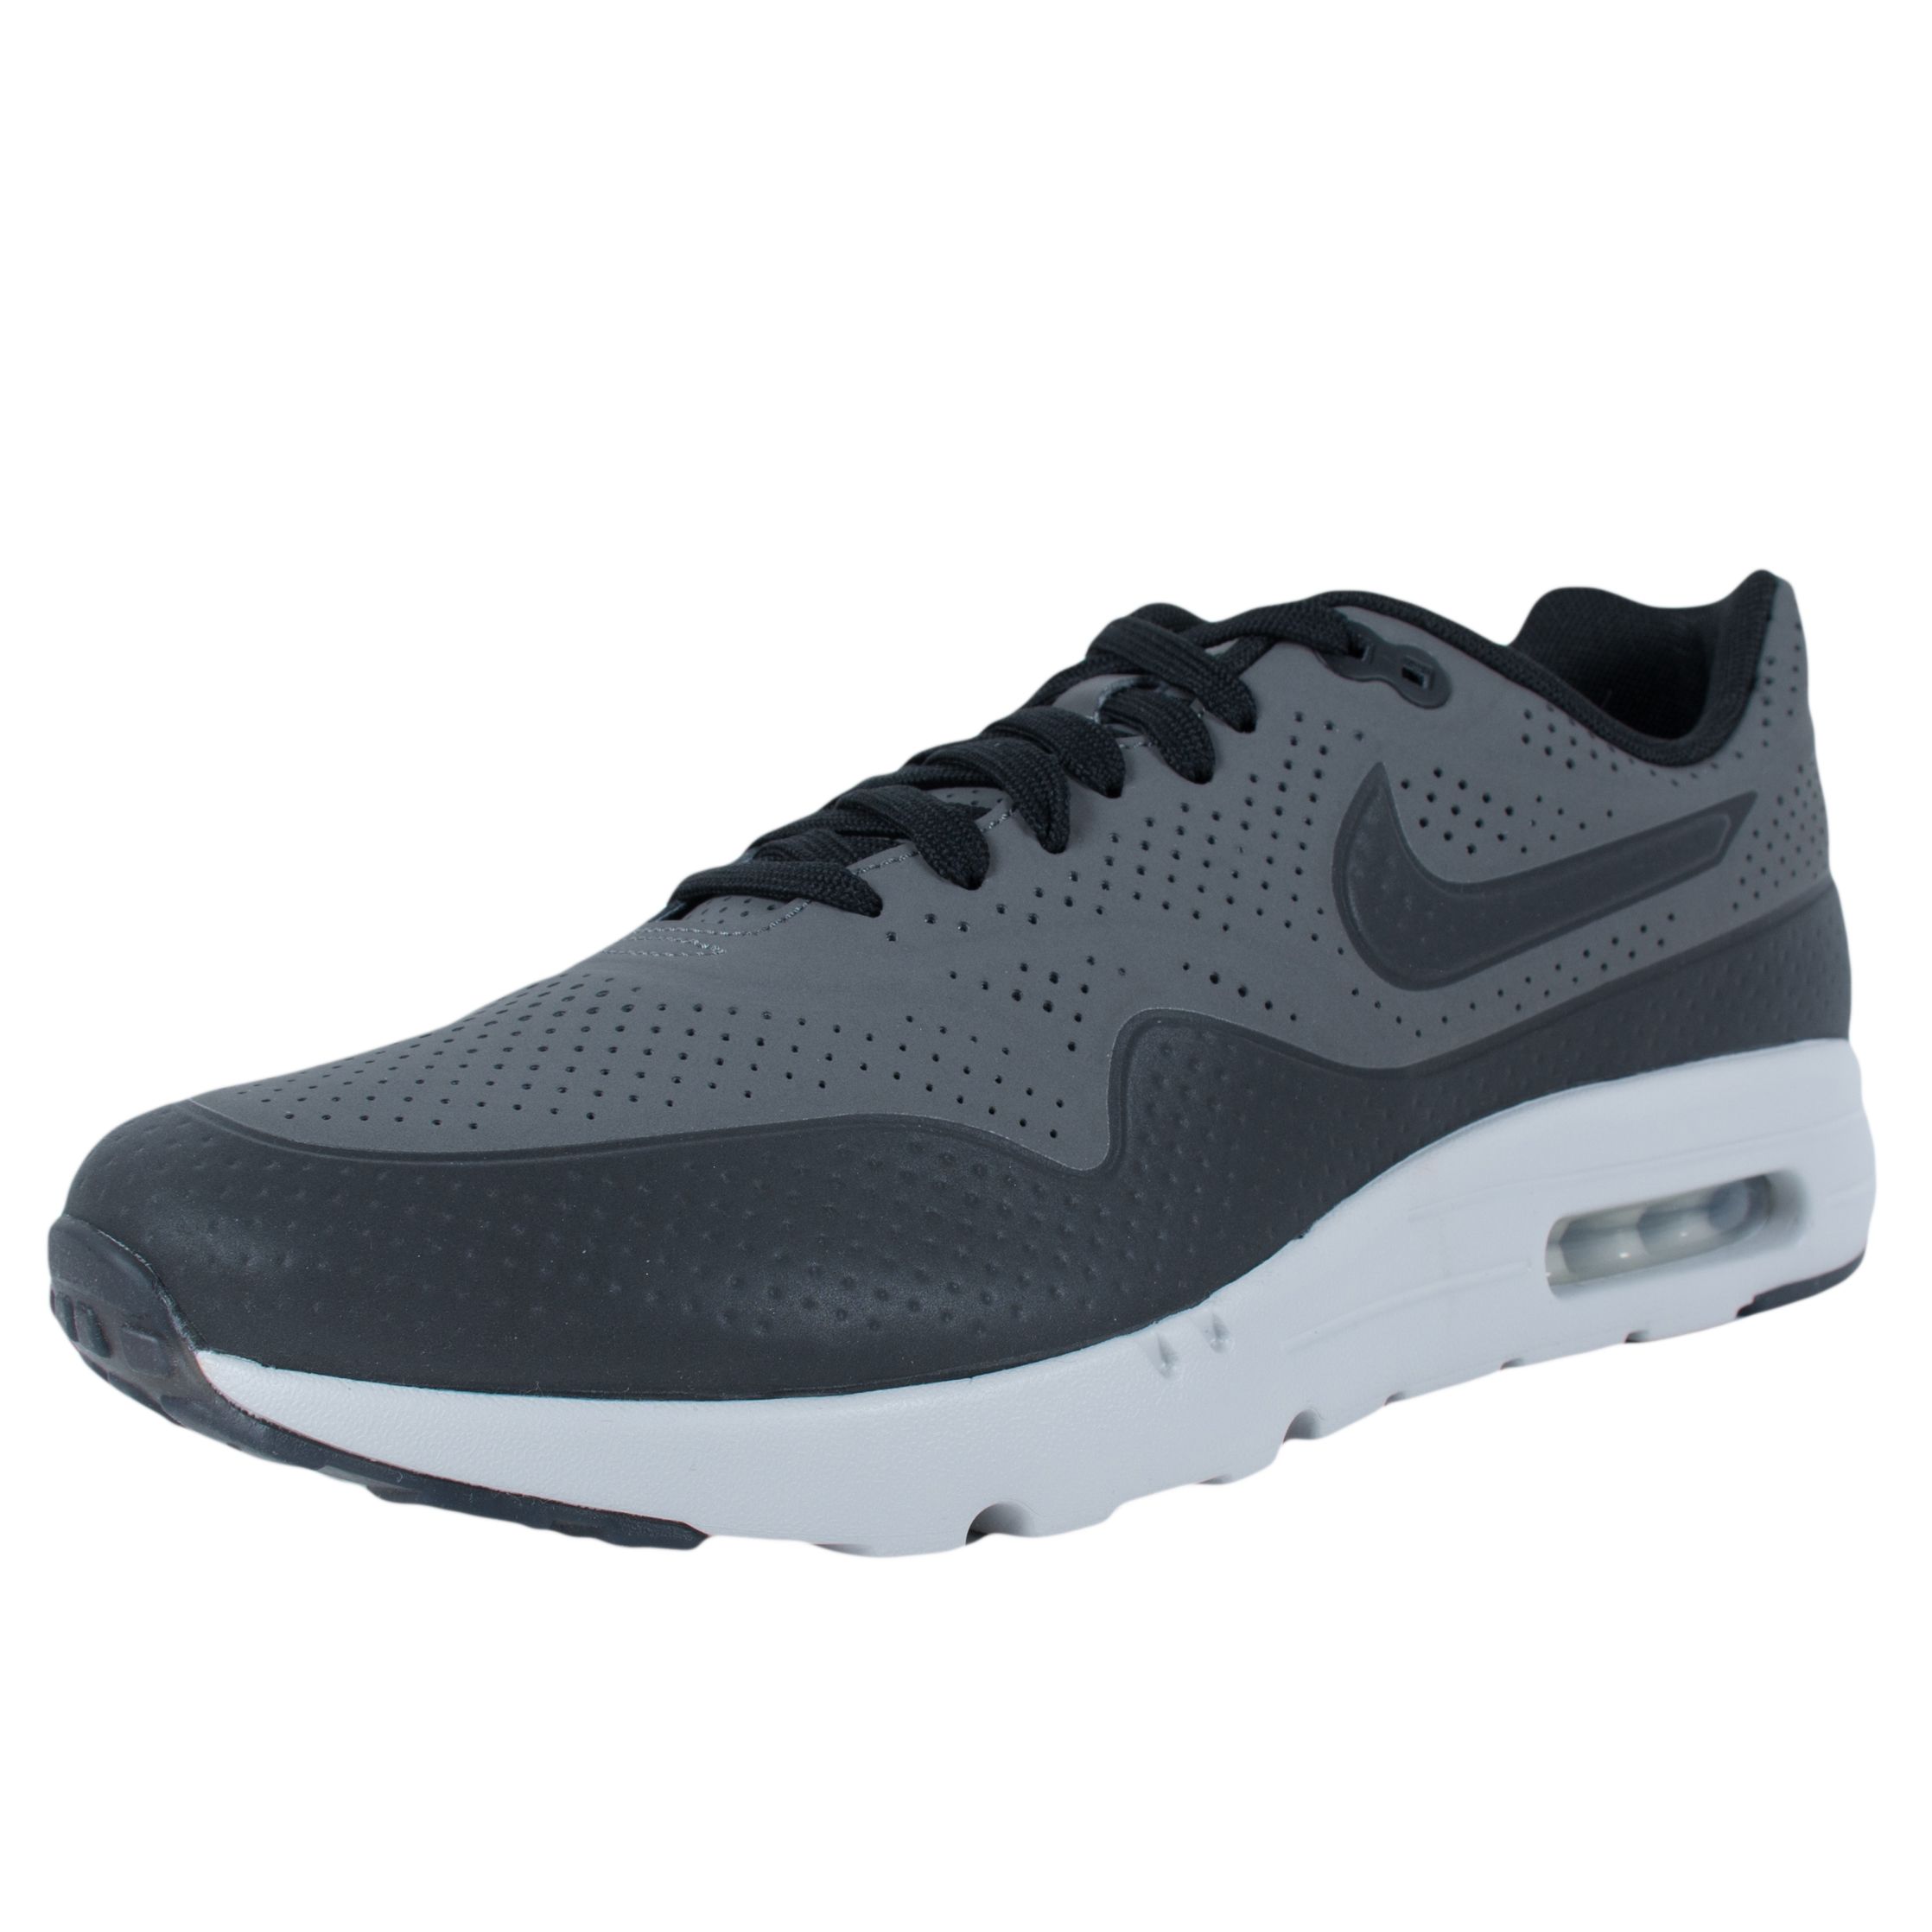 Nike AIR MAX 1 ULTRA MOIRE RUNNING SHOES DARK GREY BLACK ...